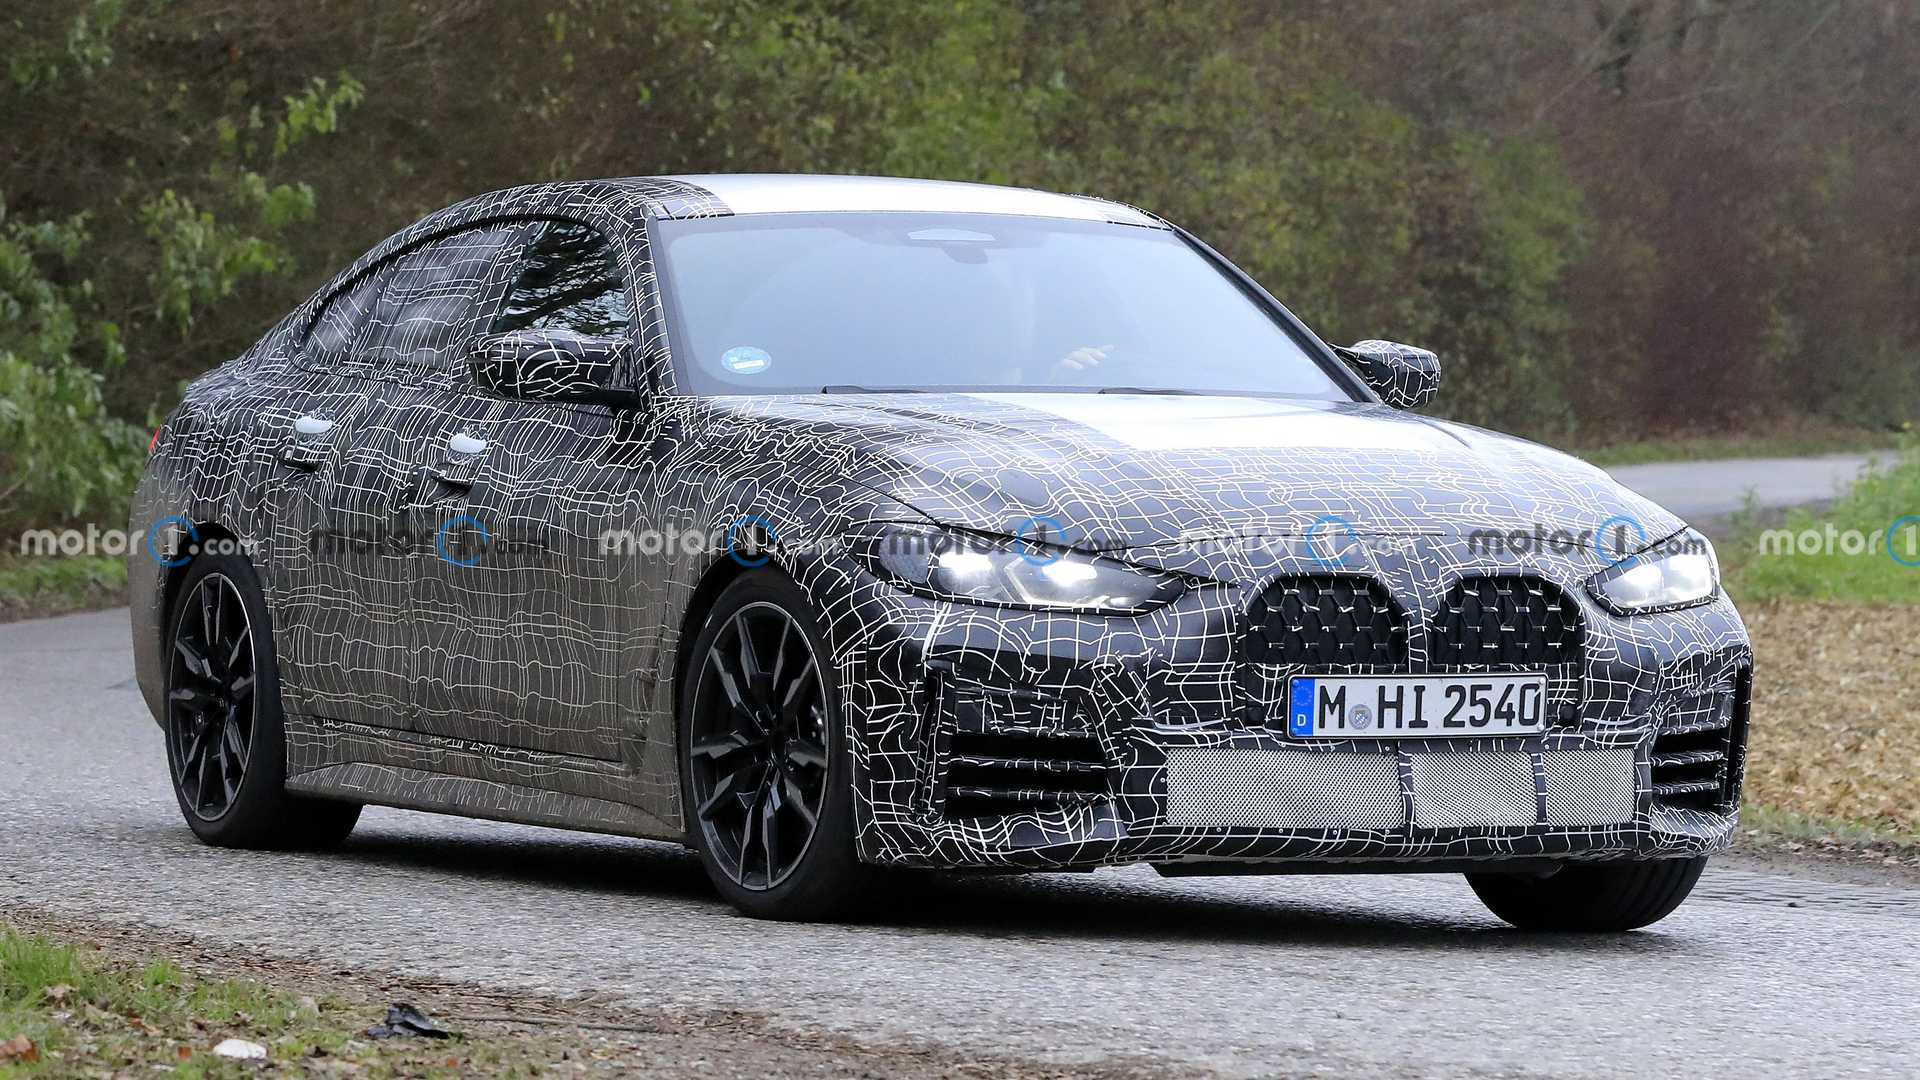 2022 Bmw 4 Series Gran Coupe Spied Looking Production Ready I4 Teased